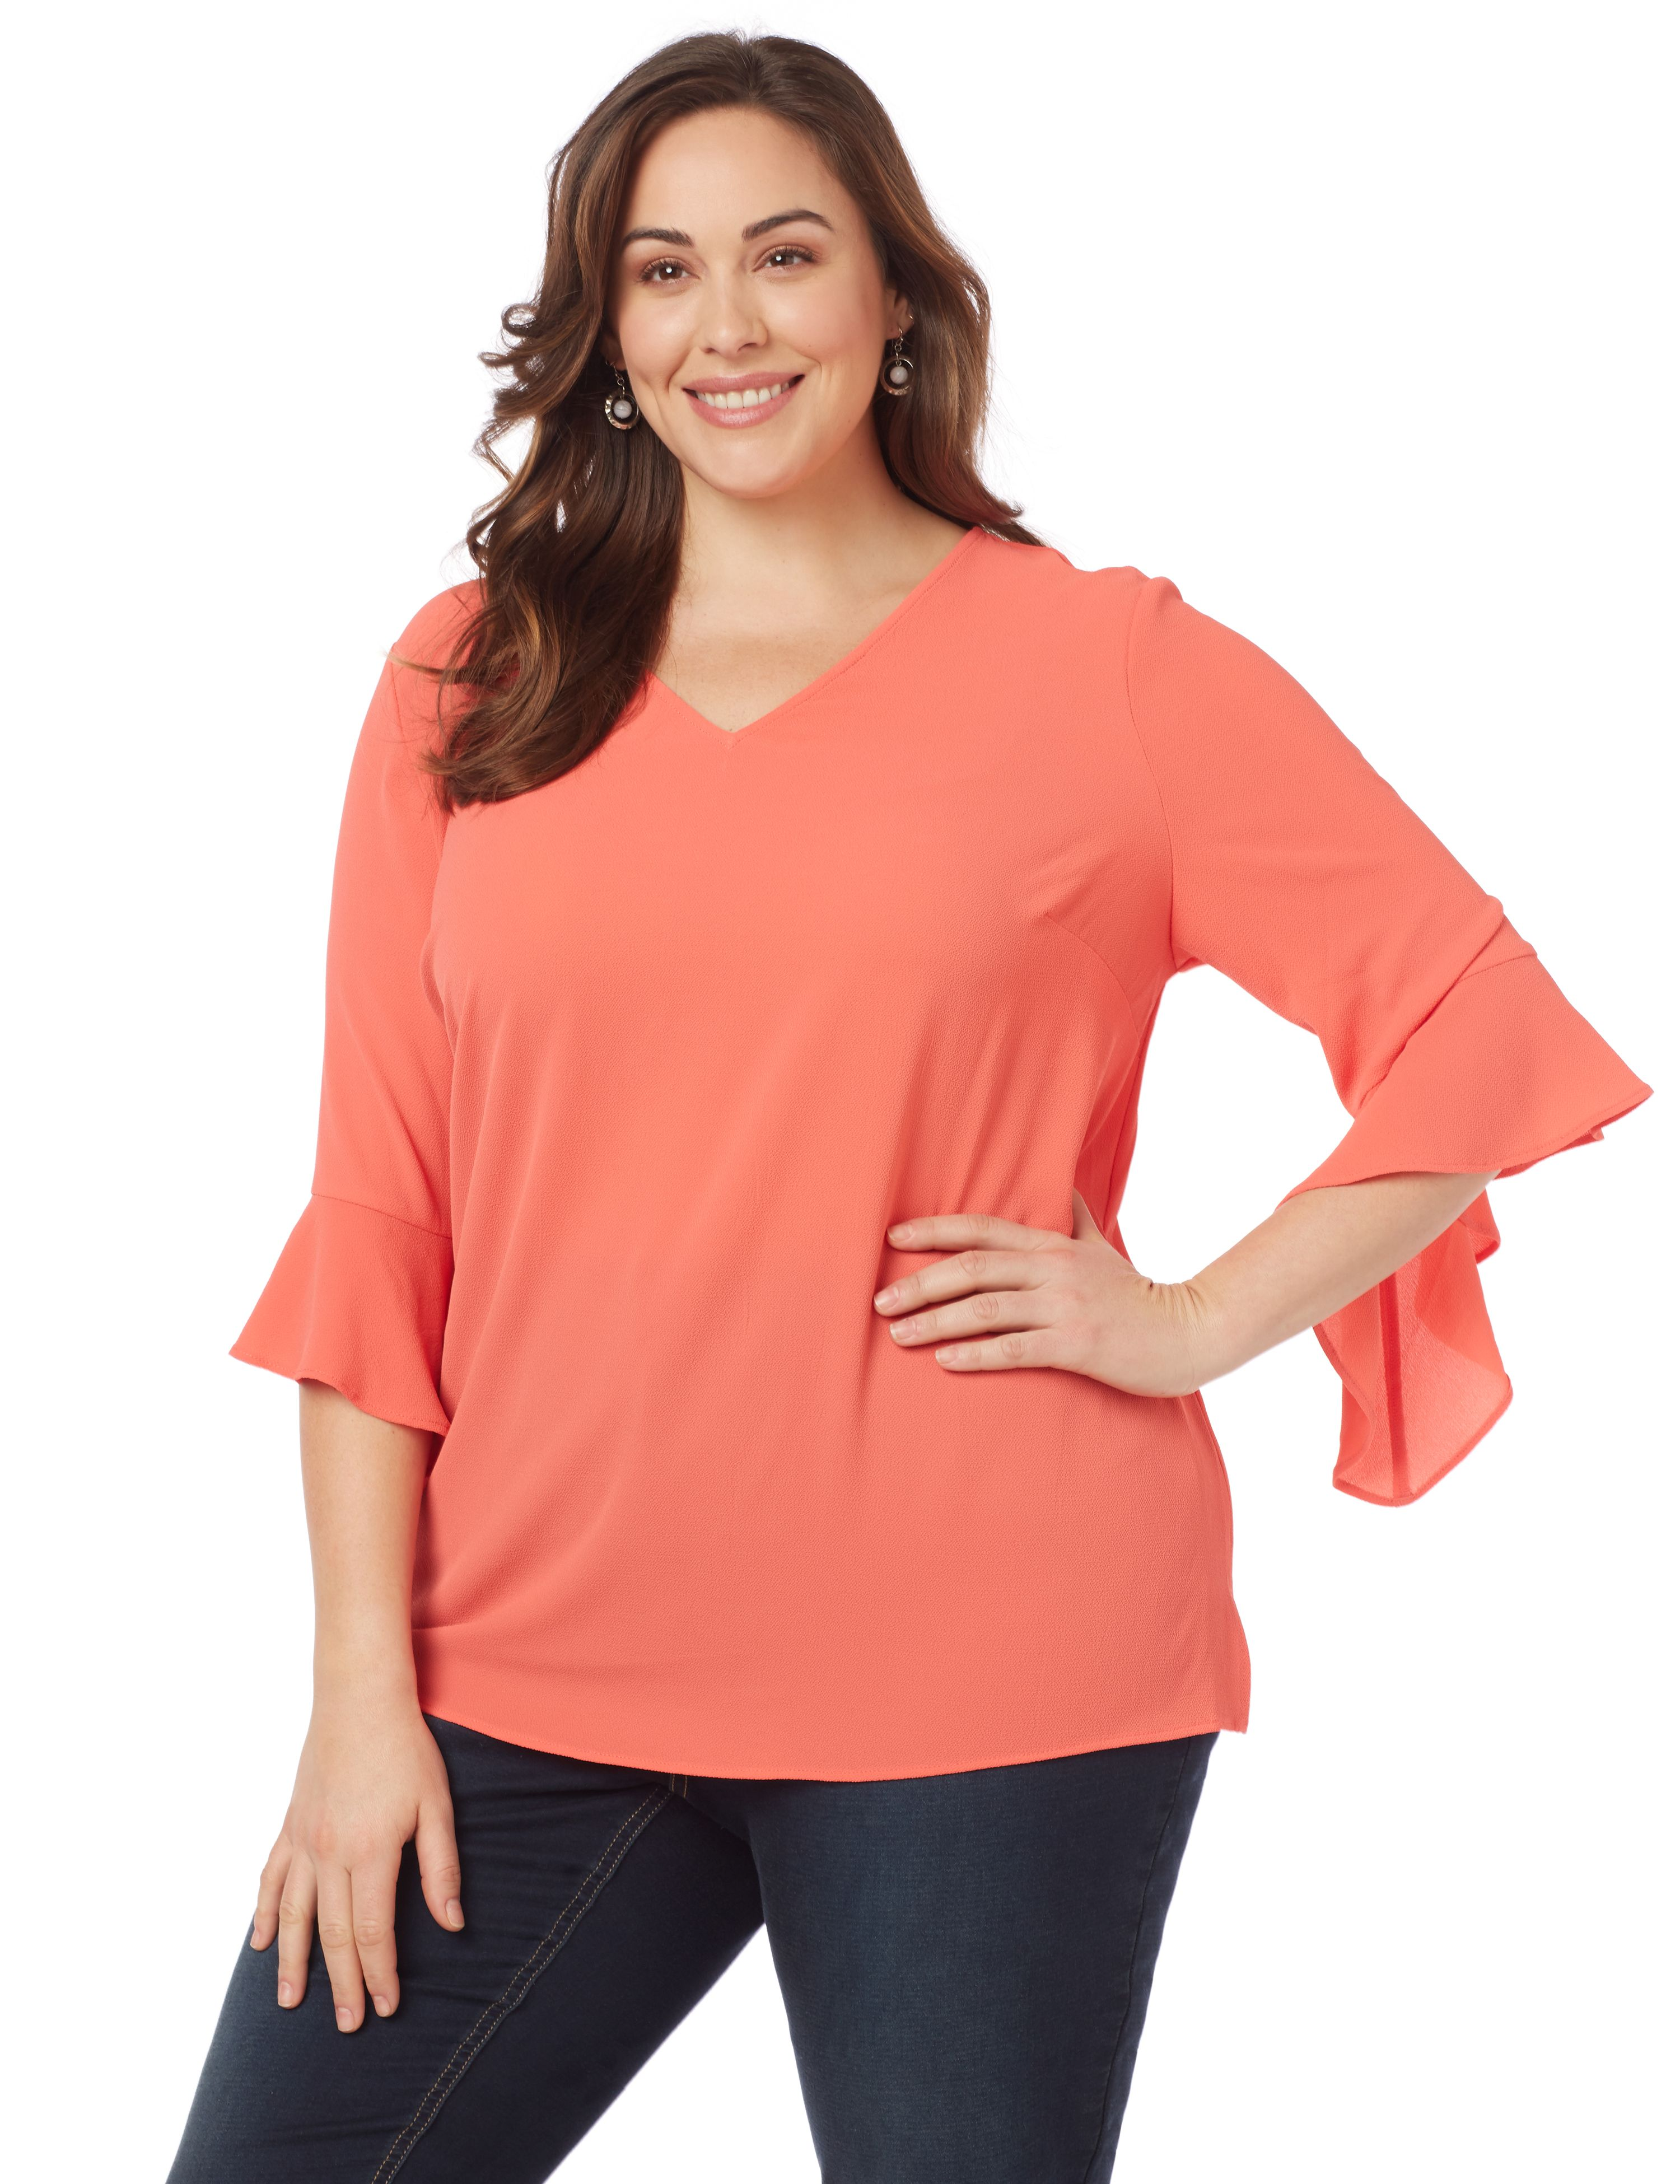 Double Flare Top 1087939 Pebble Crepe V-nk Blouse Wi MP-300095736